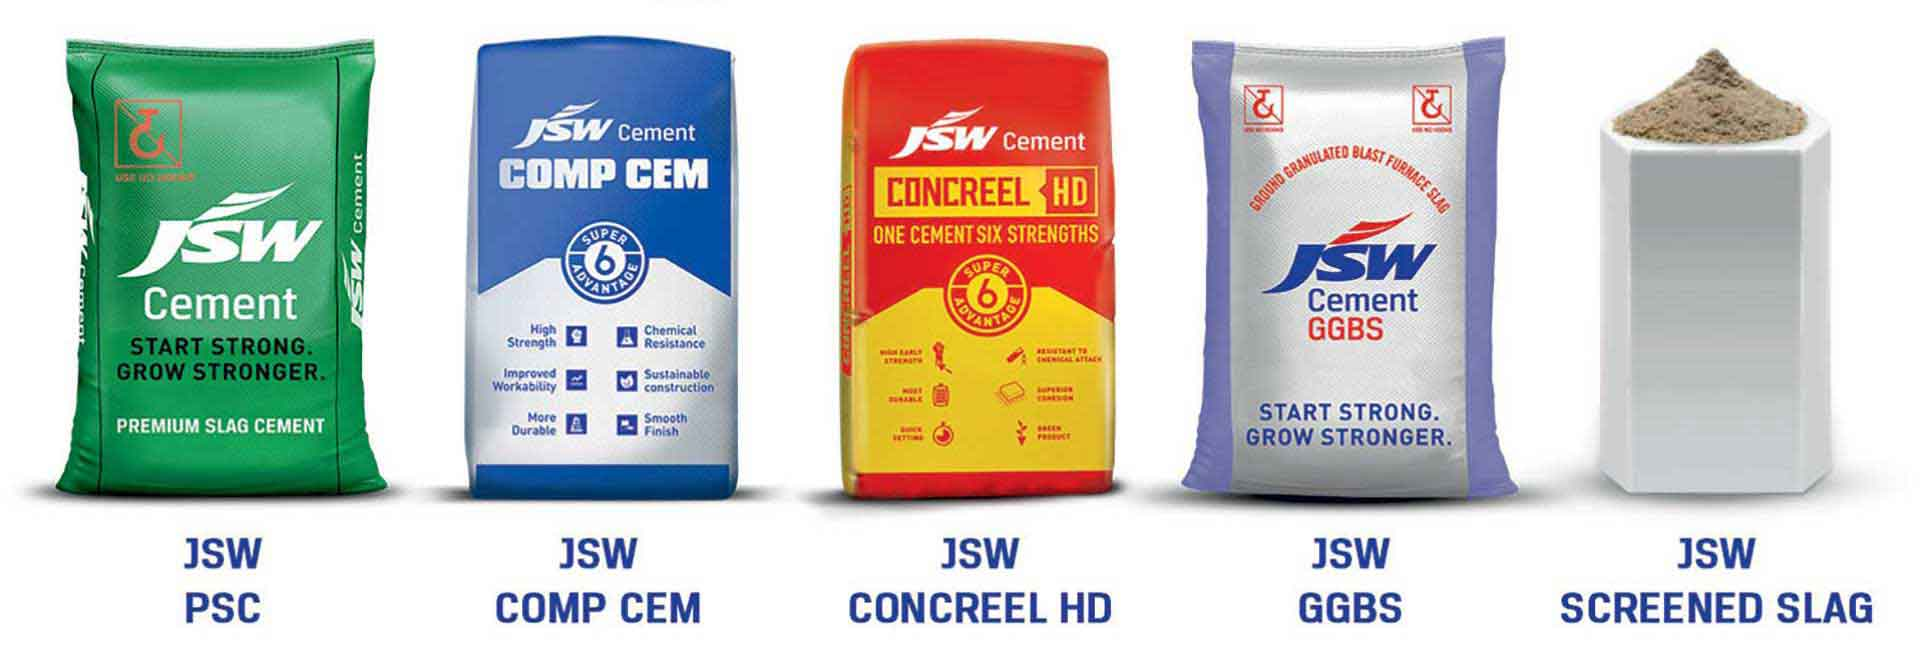 Green Products from the House of JSW Cement